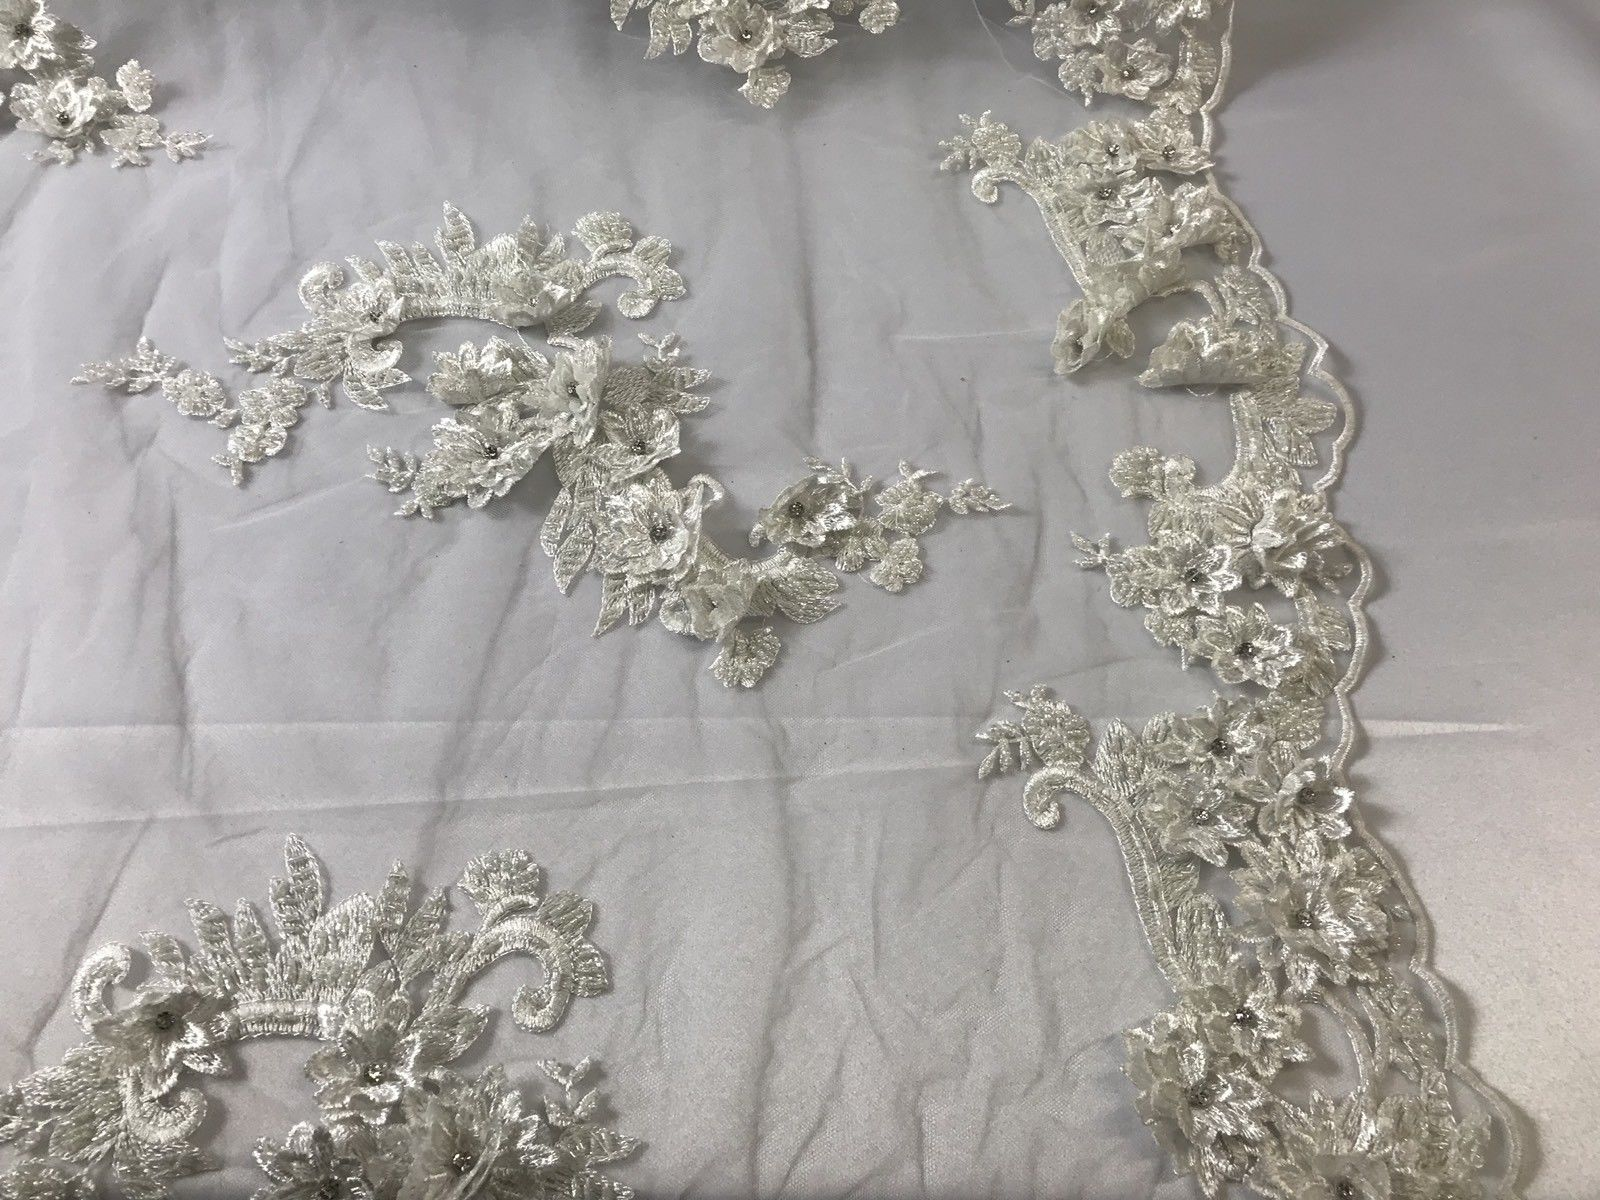 Off White 3D Flower Lace Fabric Beaded & Diamond Bridal Wedding Dress By The Yard - KINGDOM OF FABRICS